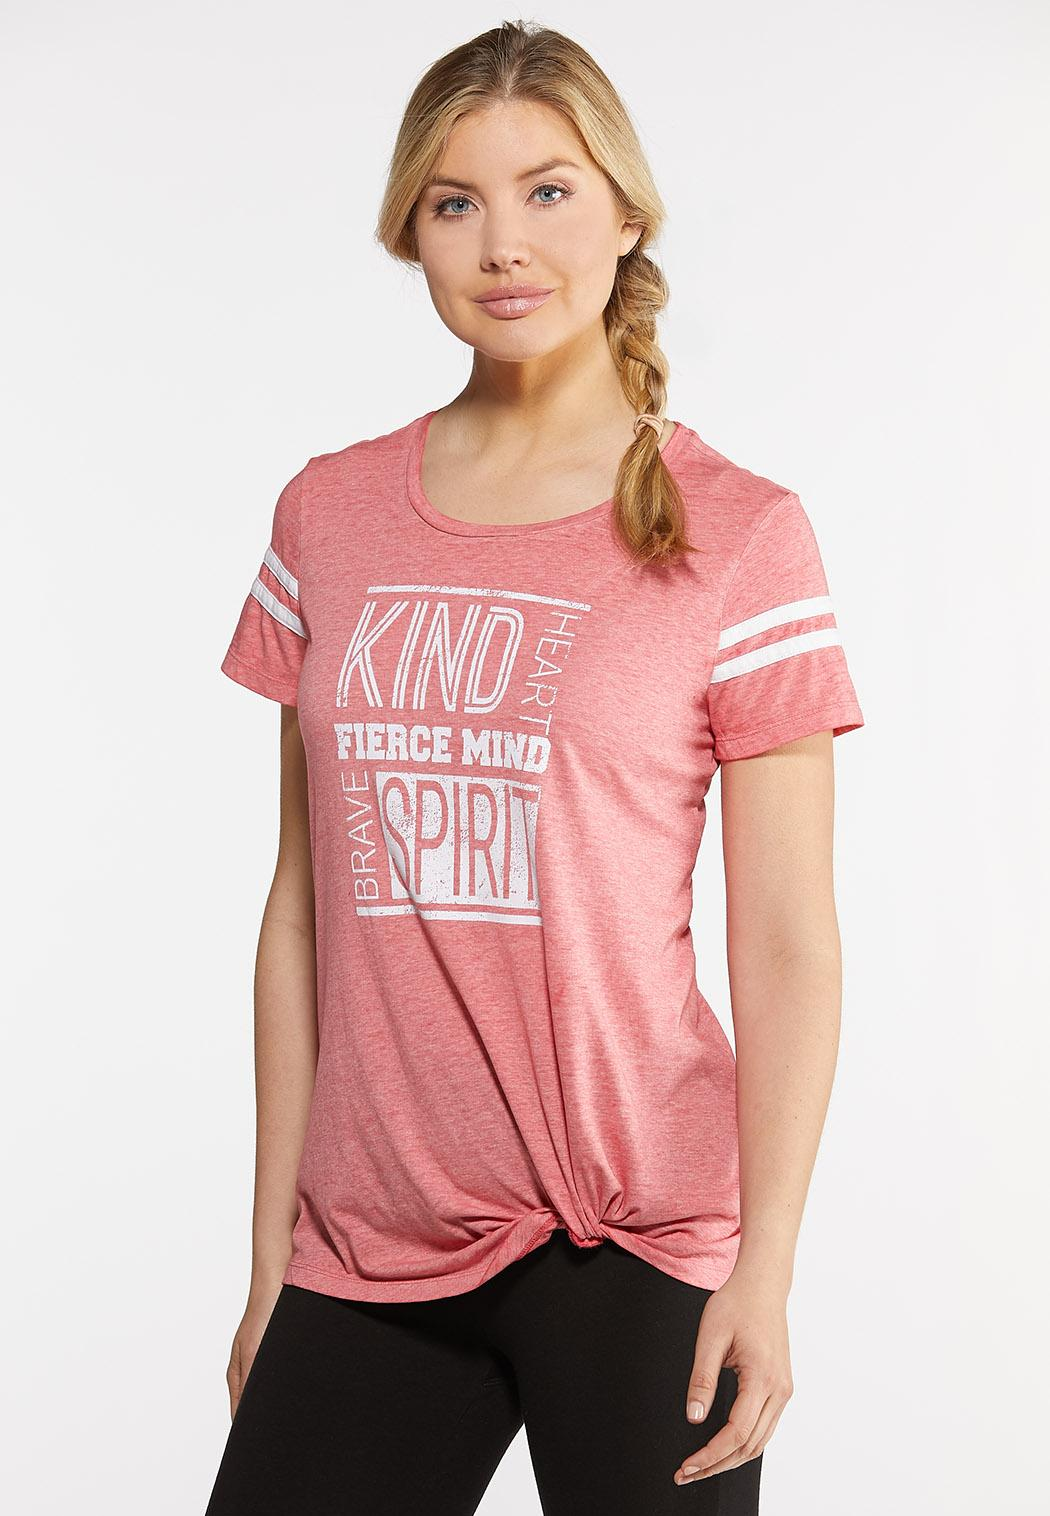 6555b3503a4f Women's Plus Size Graphic Tees